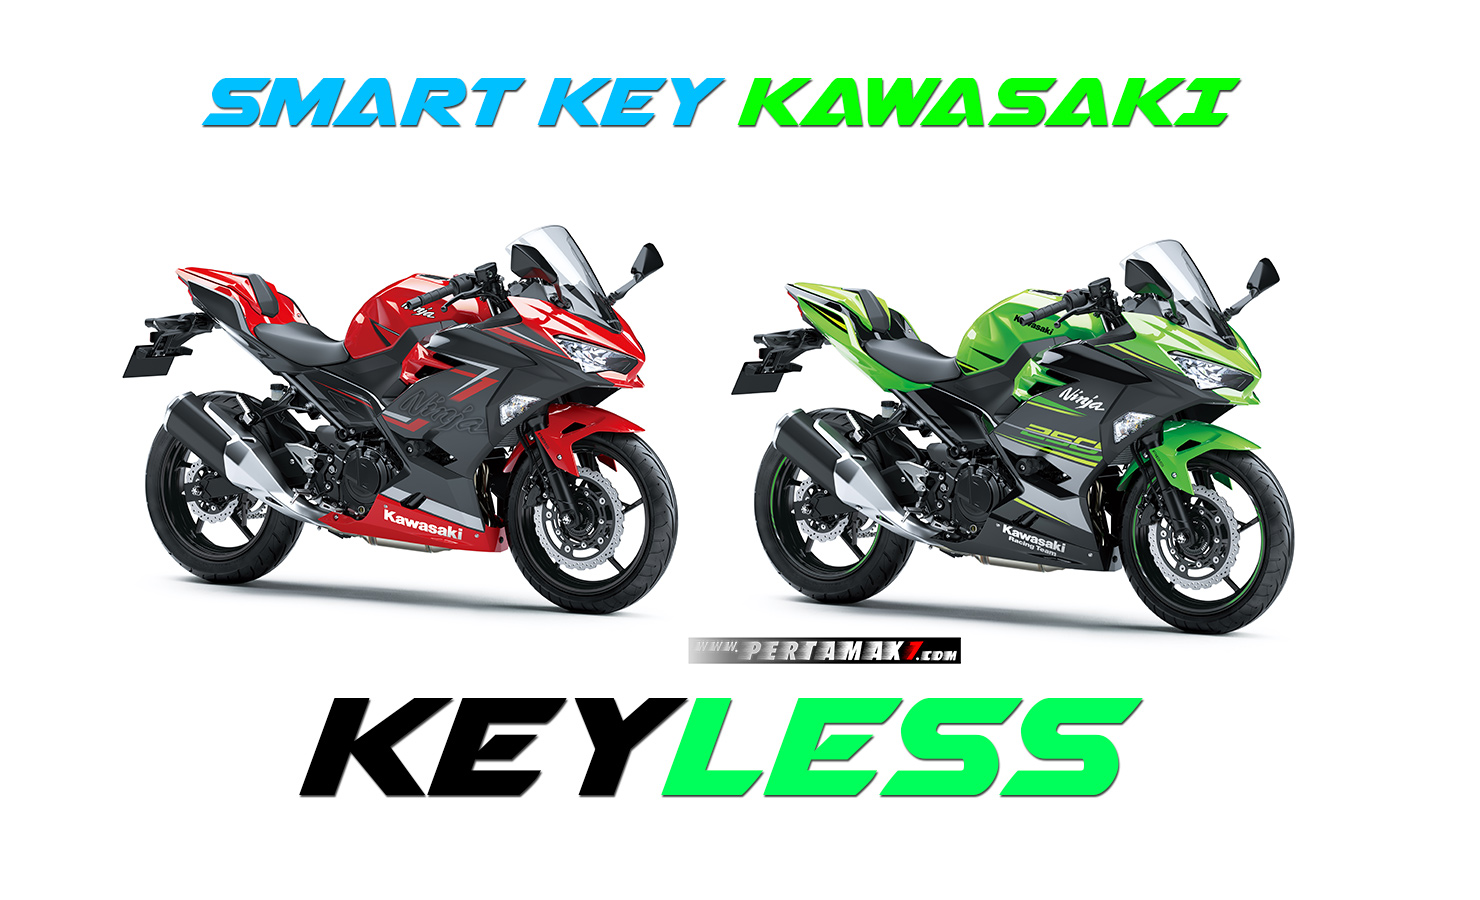 Harga All new Kawasaki Ninja 250 FI Smart Key